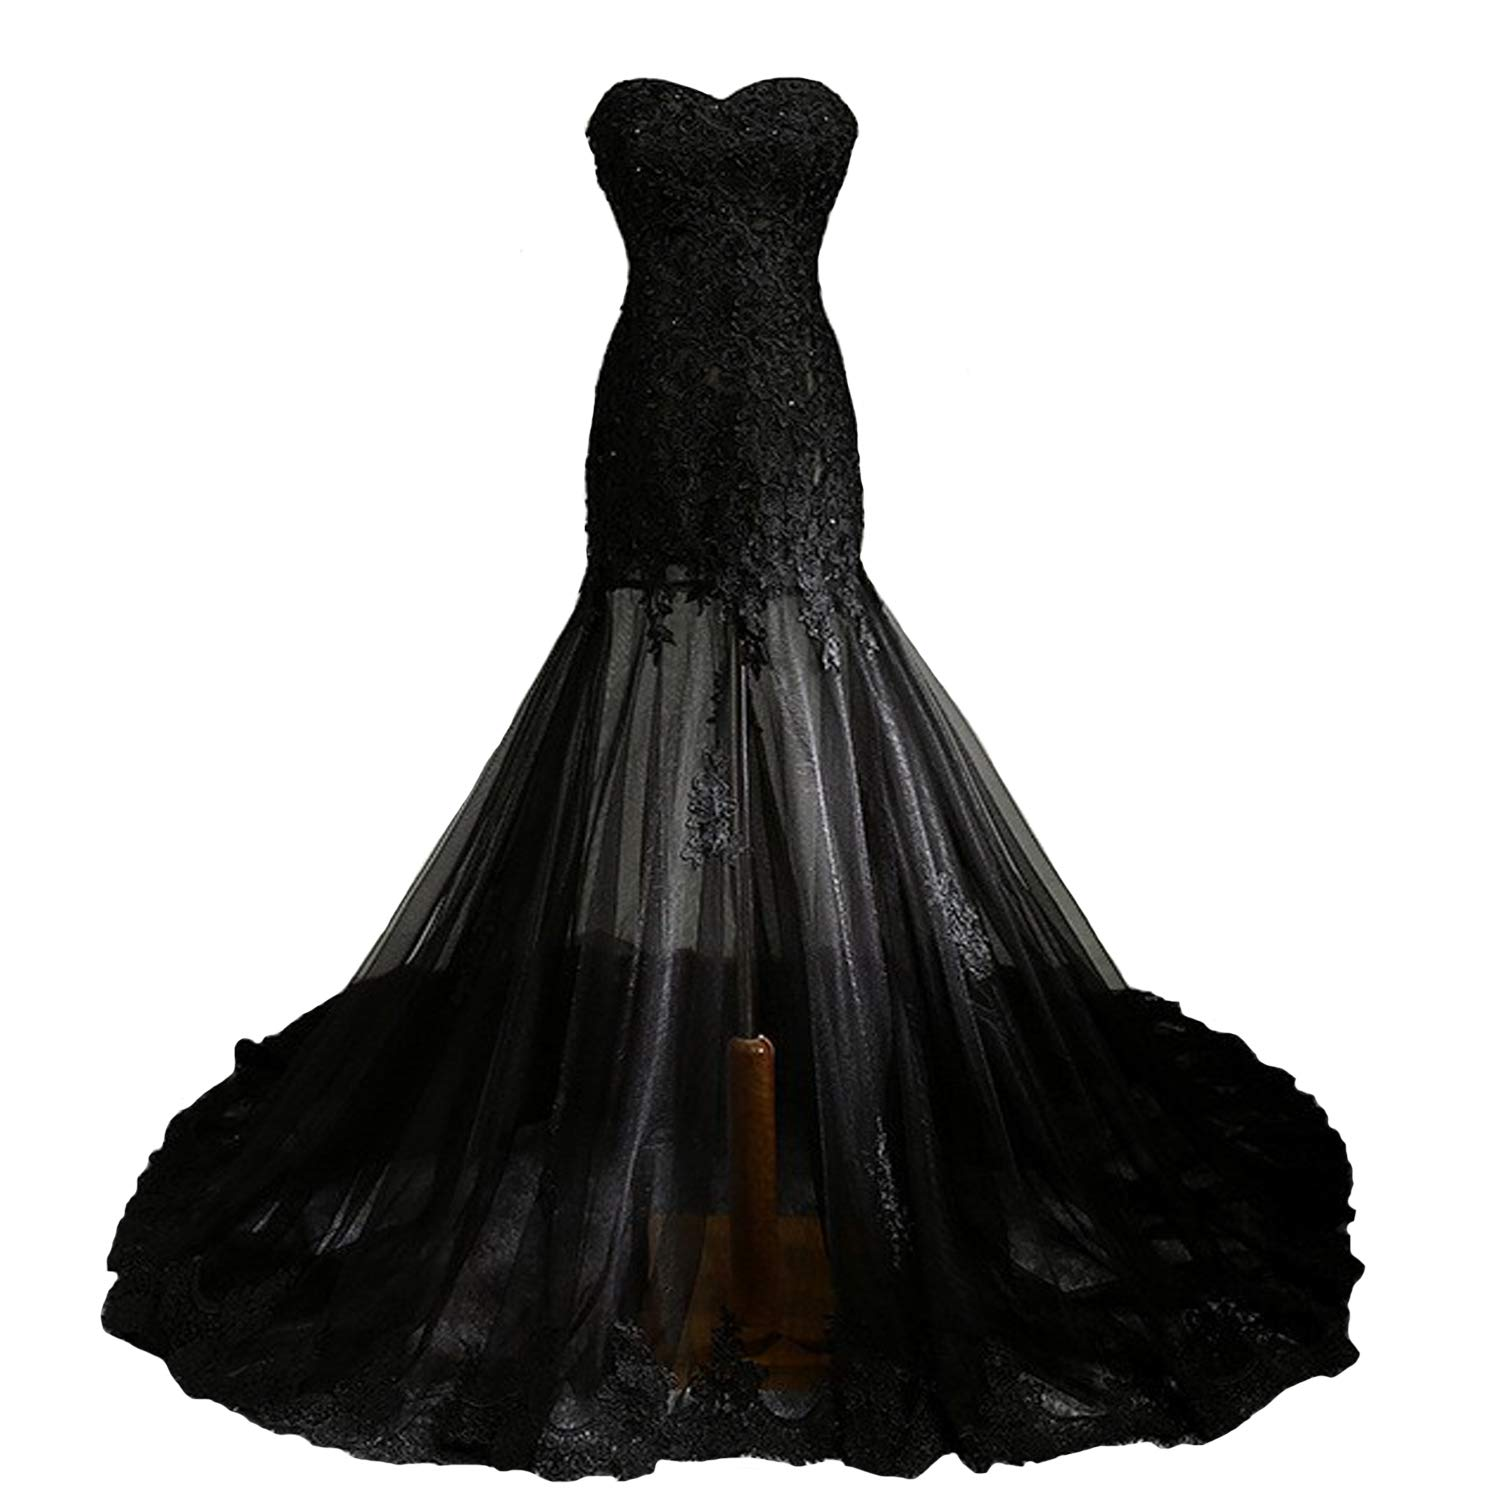 5844a163e29 Fair Lady Gothic Vintage Mermaid Prom Dress Long Beaded Lace Black Wedding  Dress Party Gown at Amazon Women s Clothing store